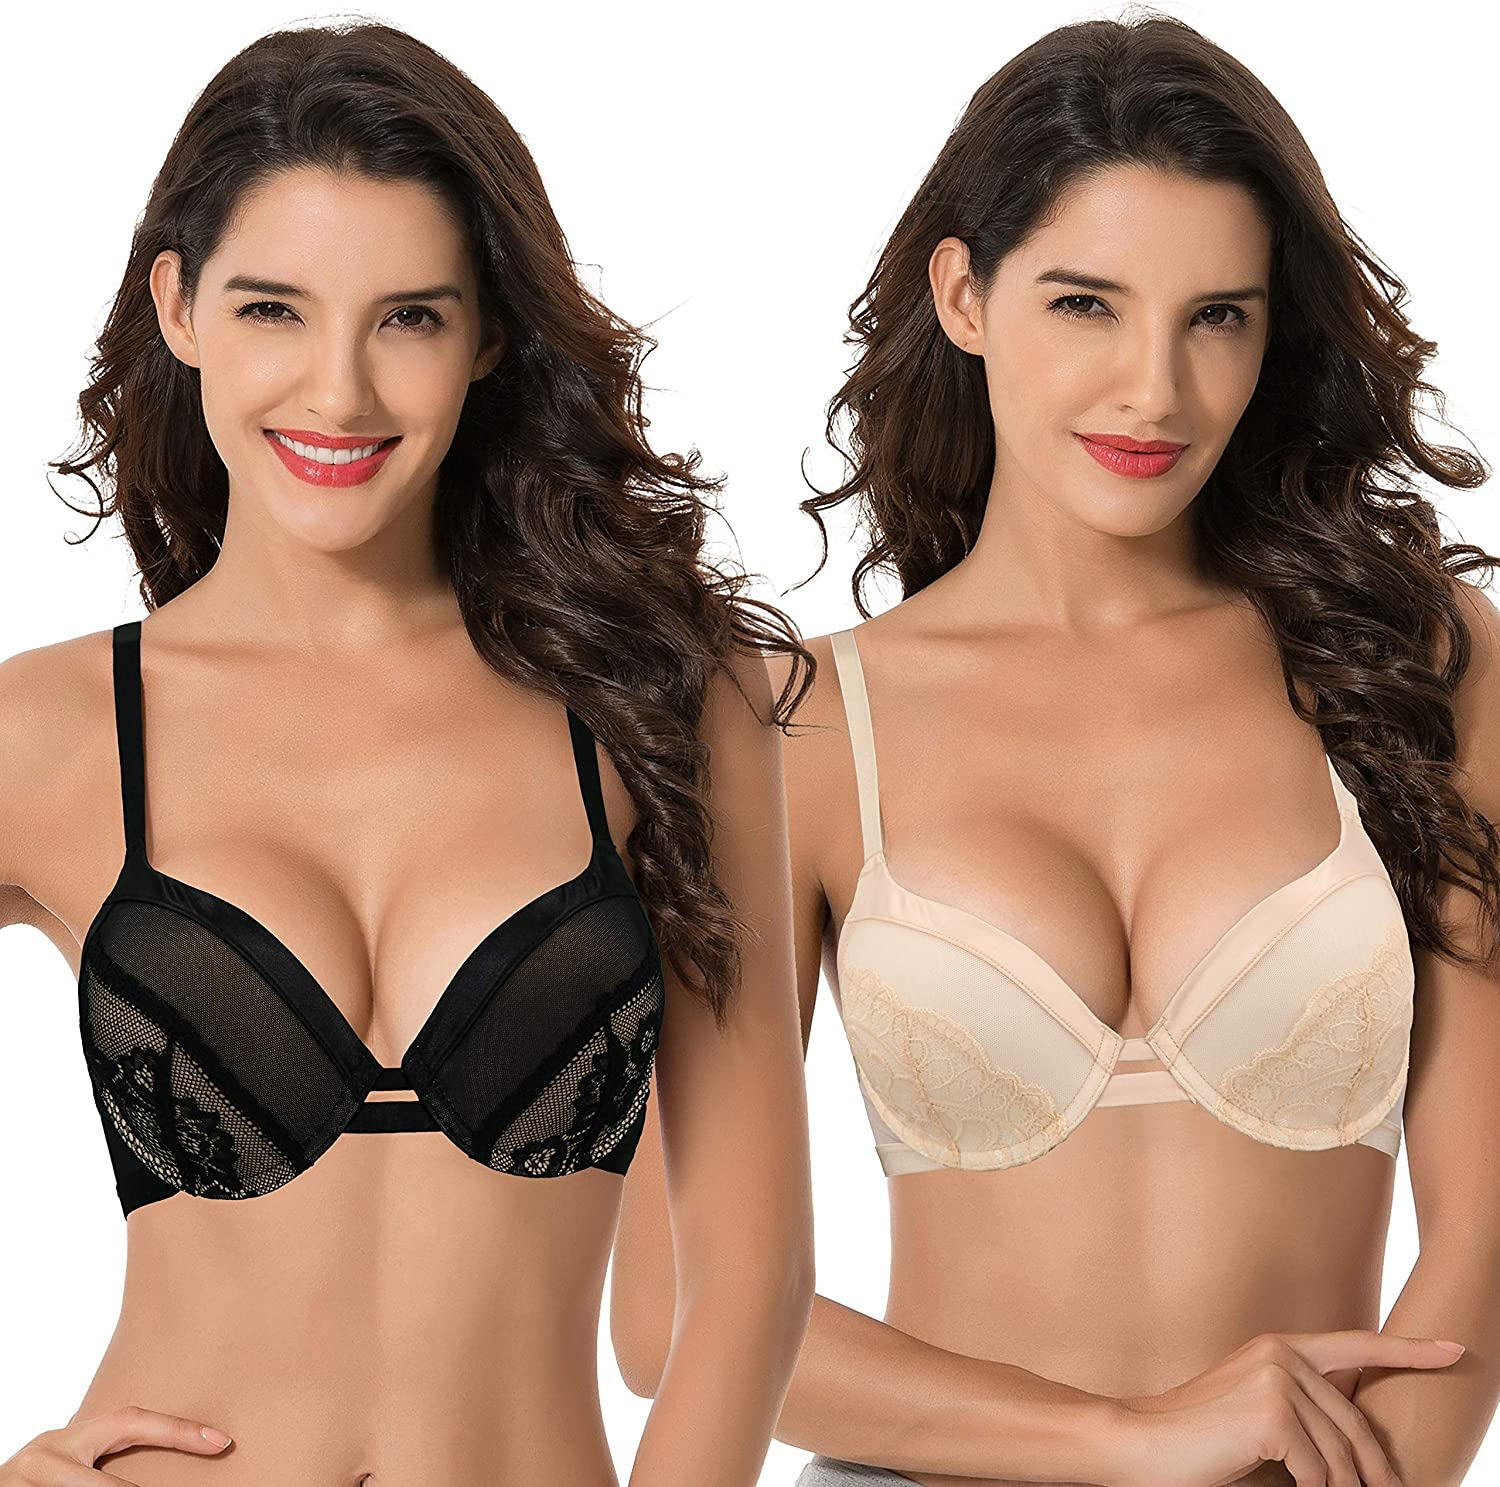 Curve Muse Women's Plus Size Push Up Add 1 Cup Underwire Perfect Shape Lace Bra